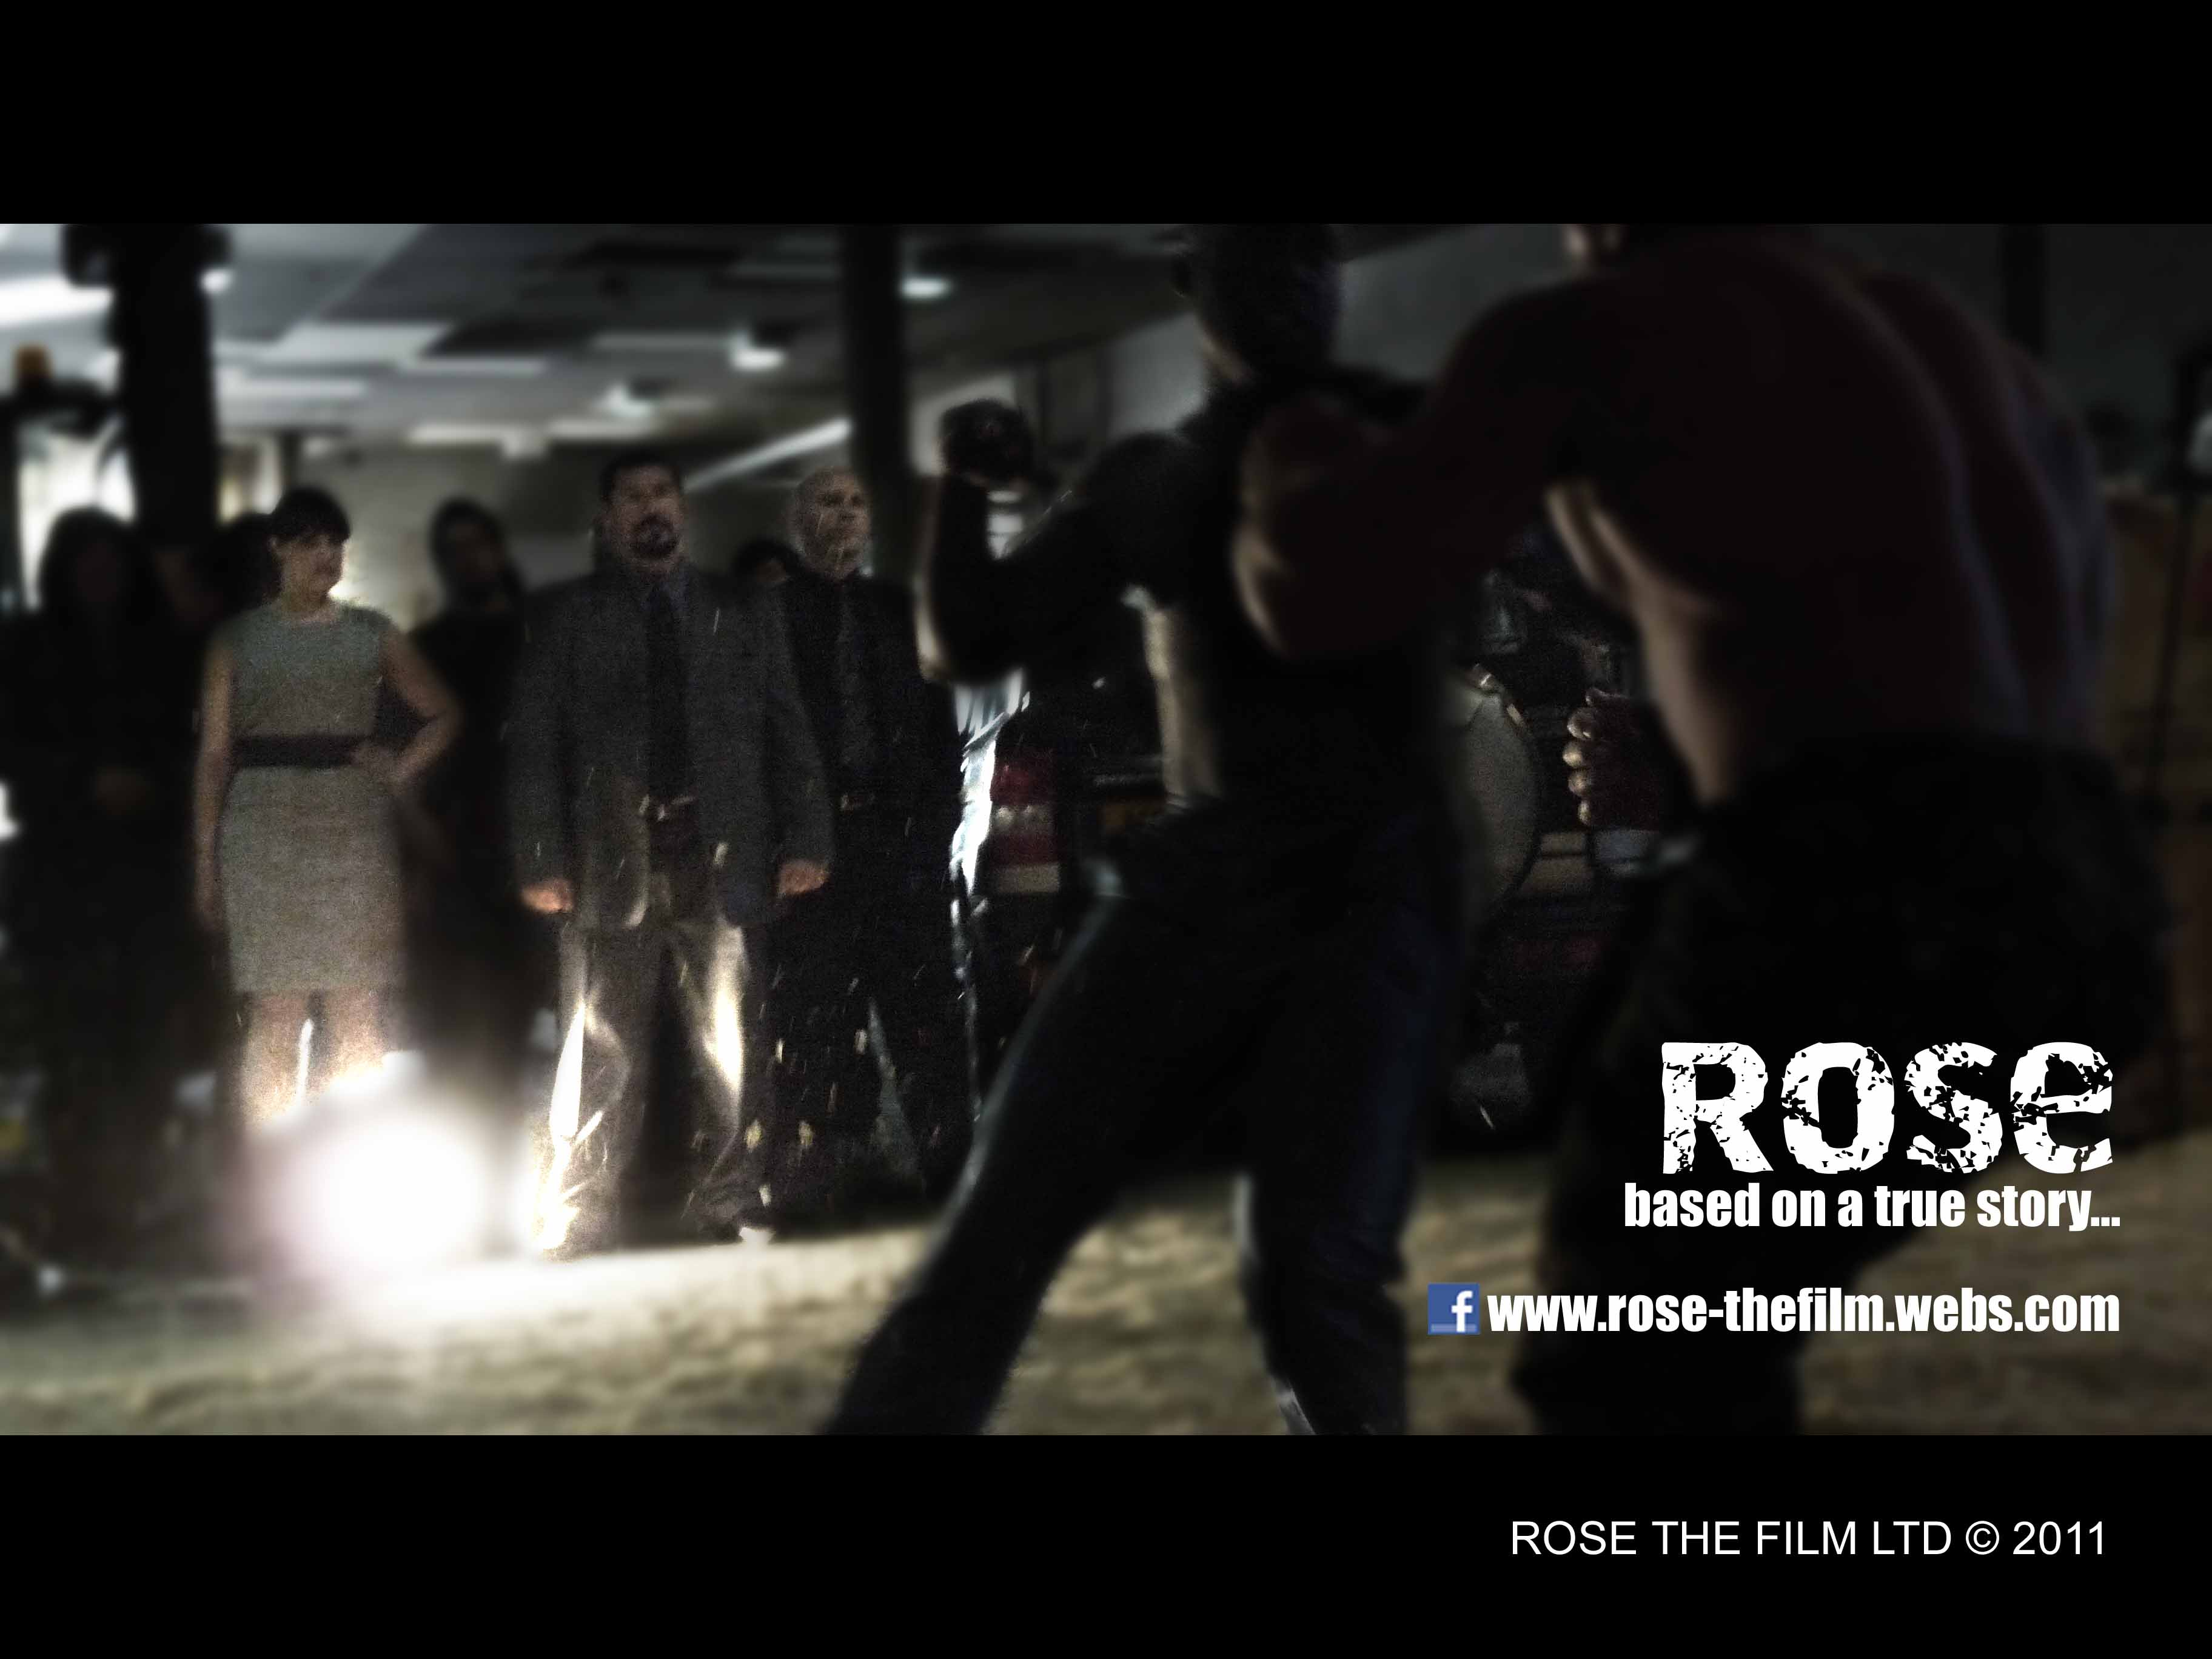 Film stills from the motion picture 'Rose'.